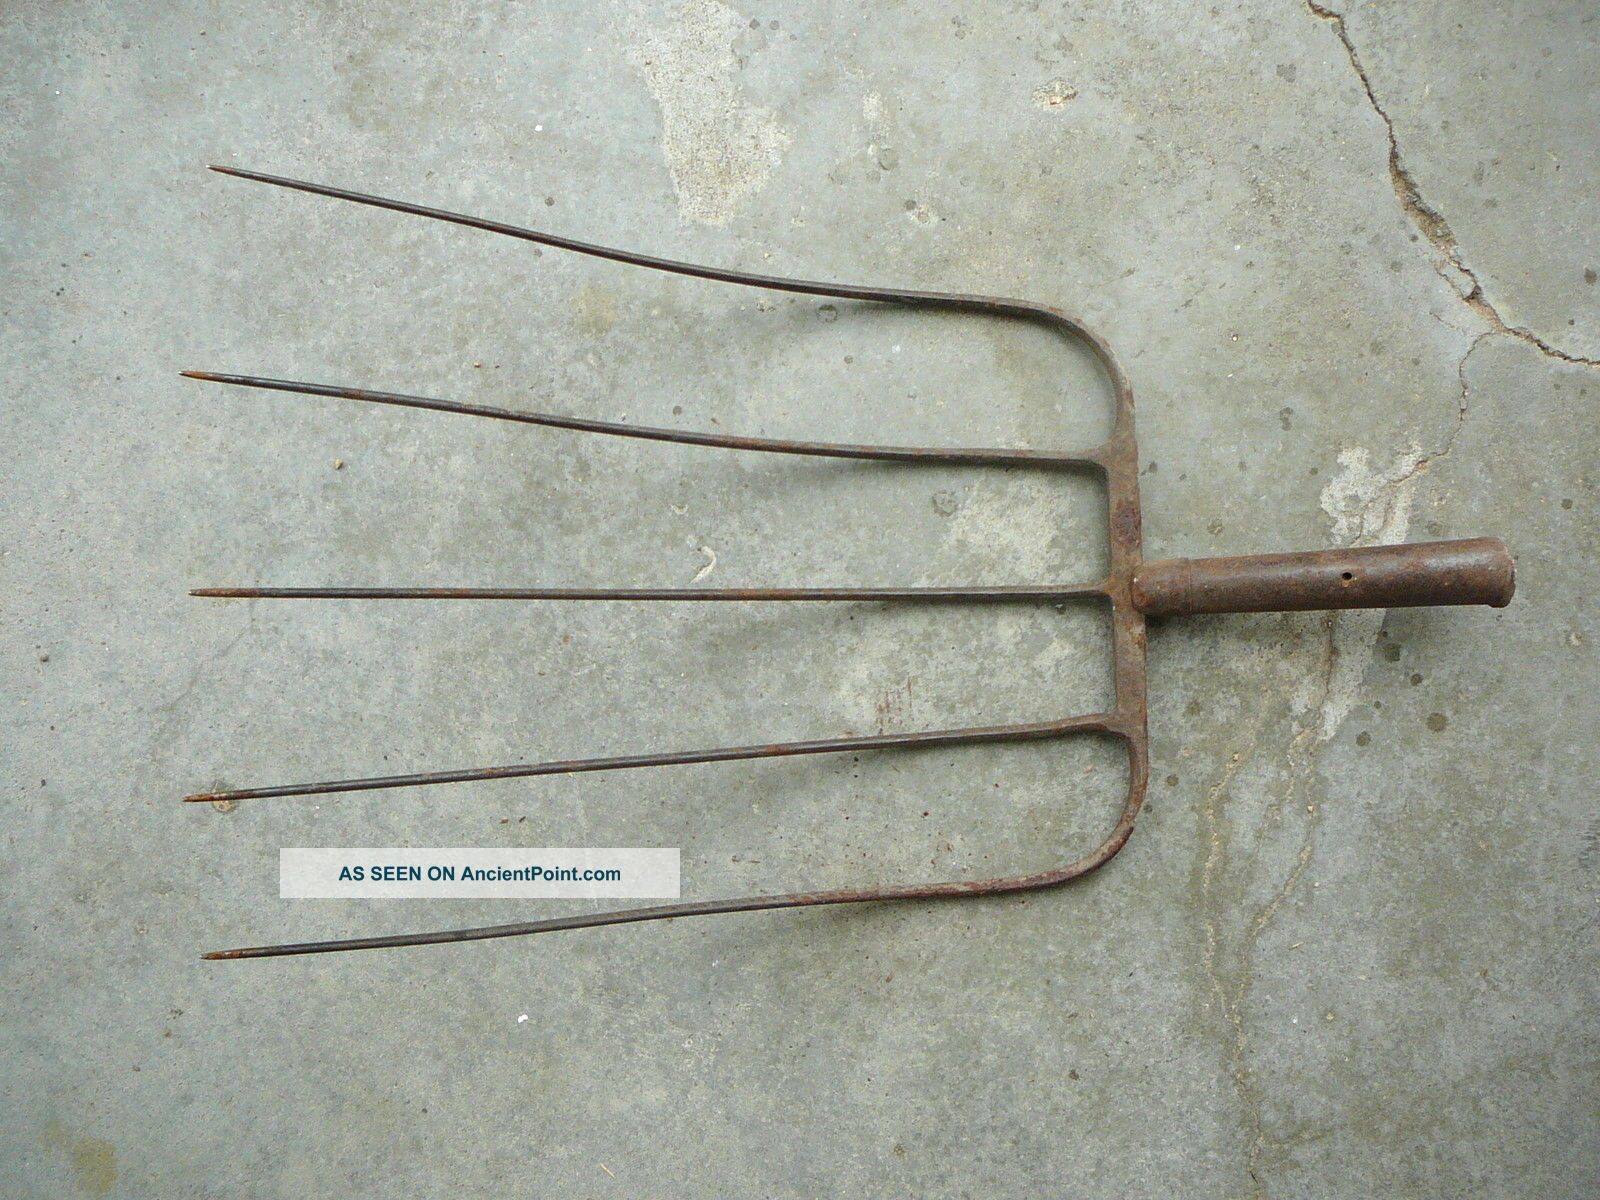 Antique Primitive Farm Ranch Tool - Metal Five Tine Barley Or Pitchfork Head 24